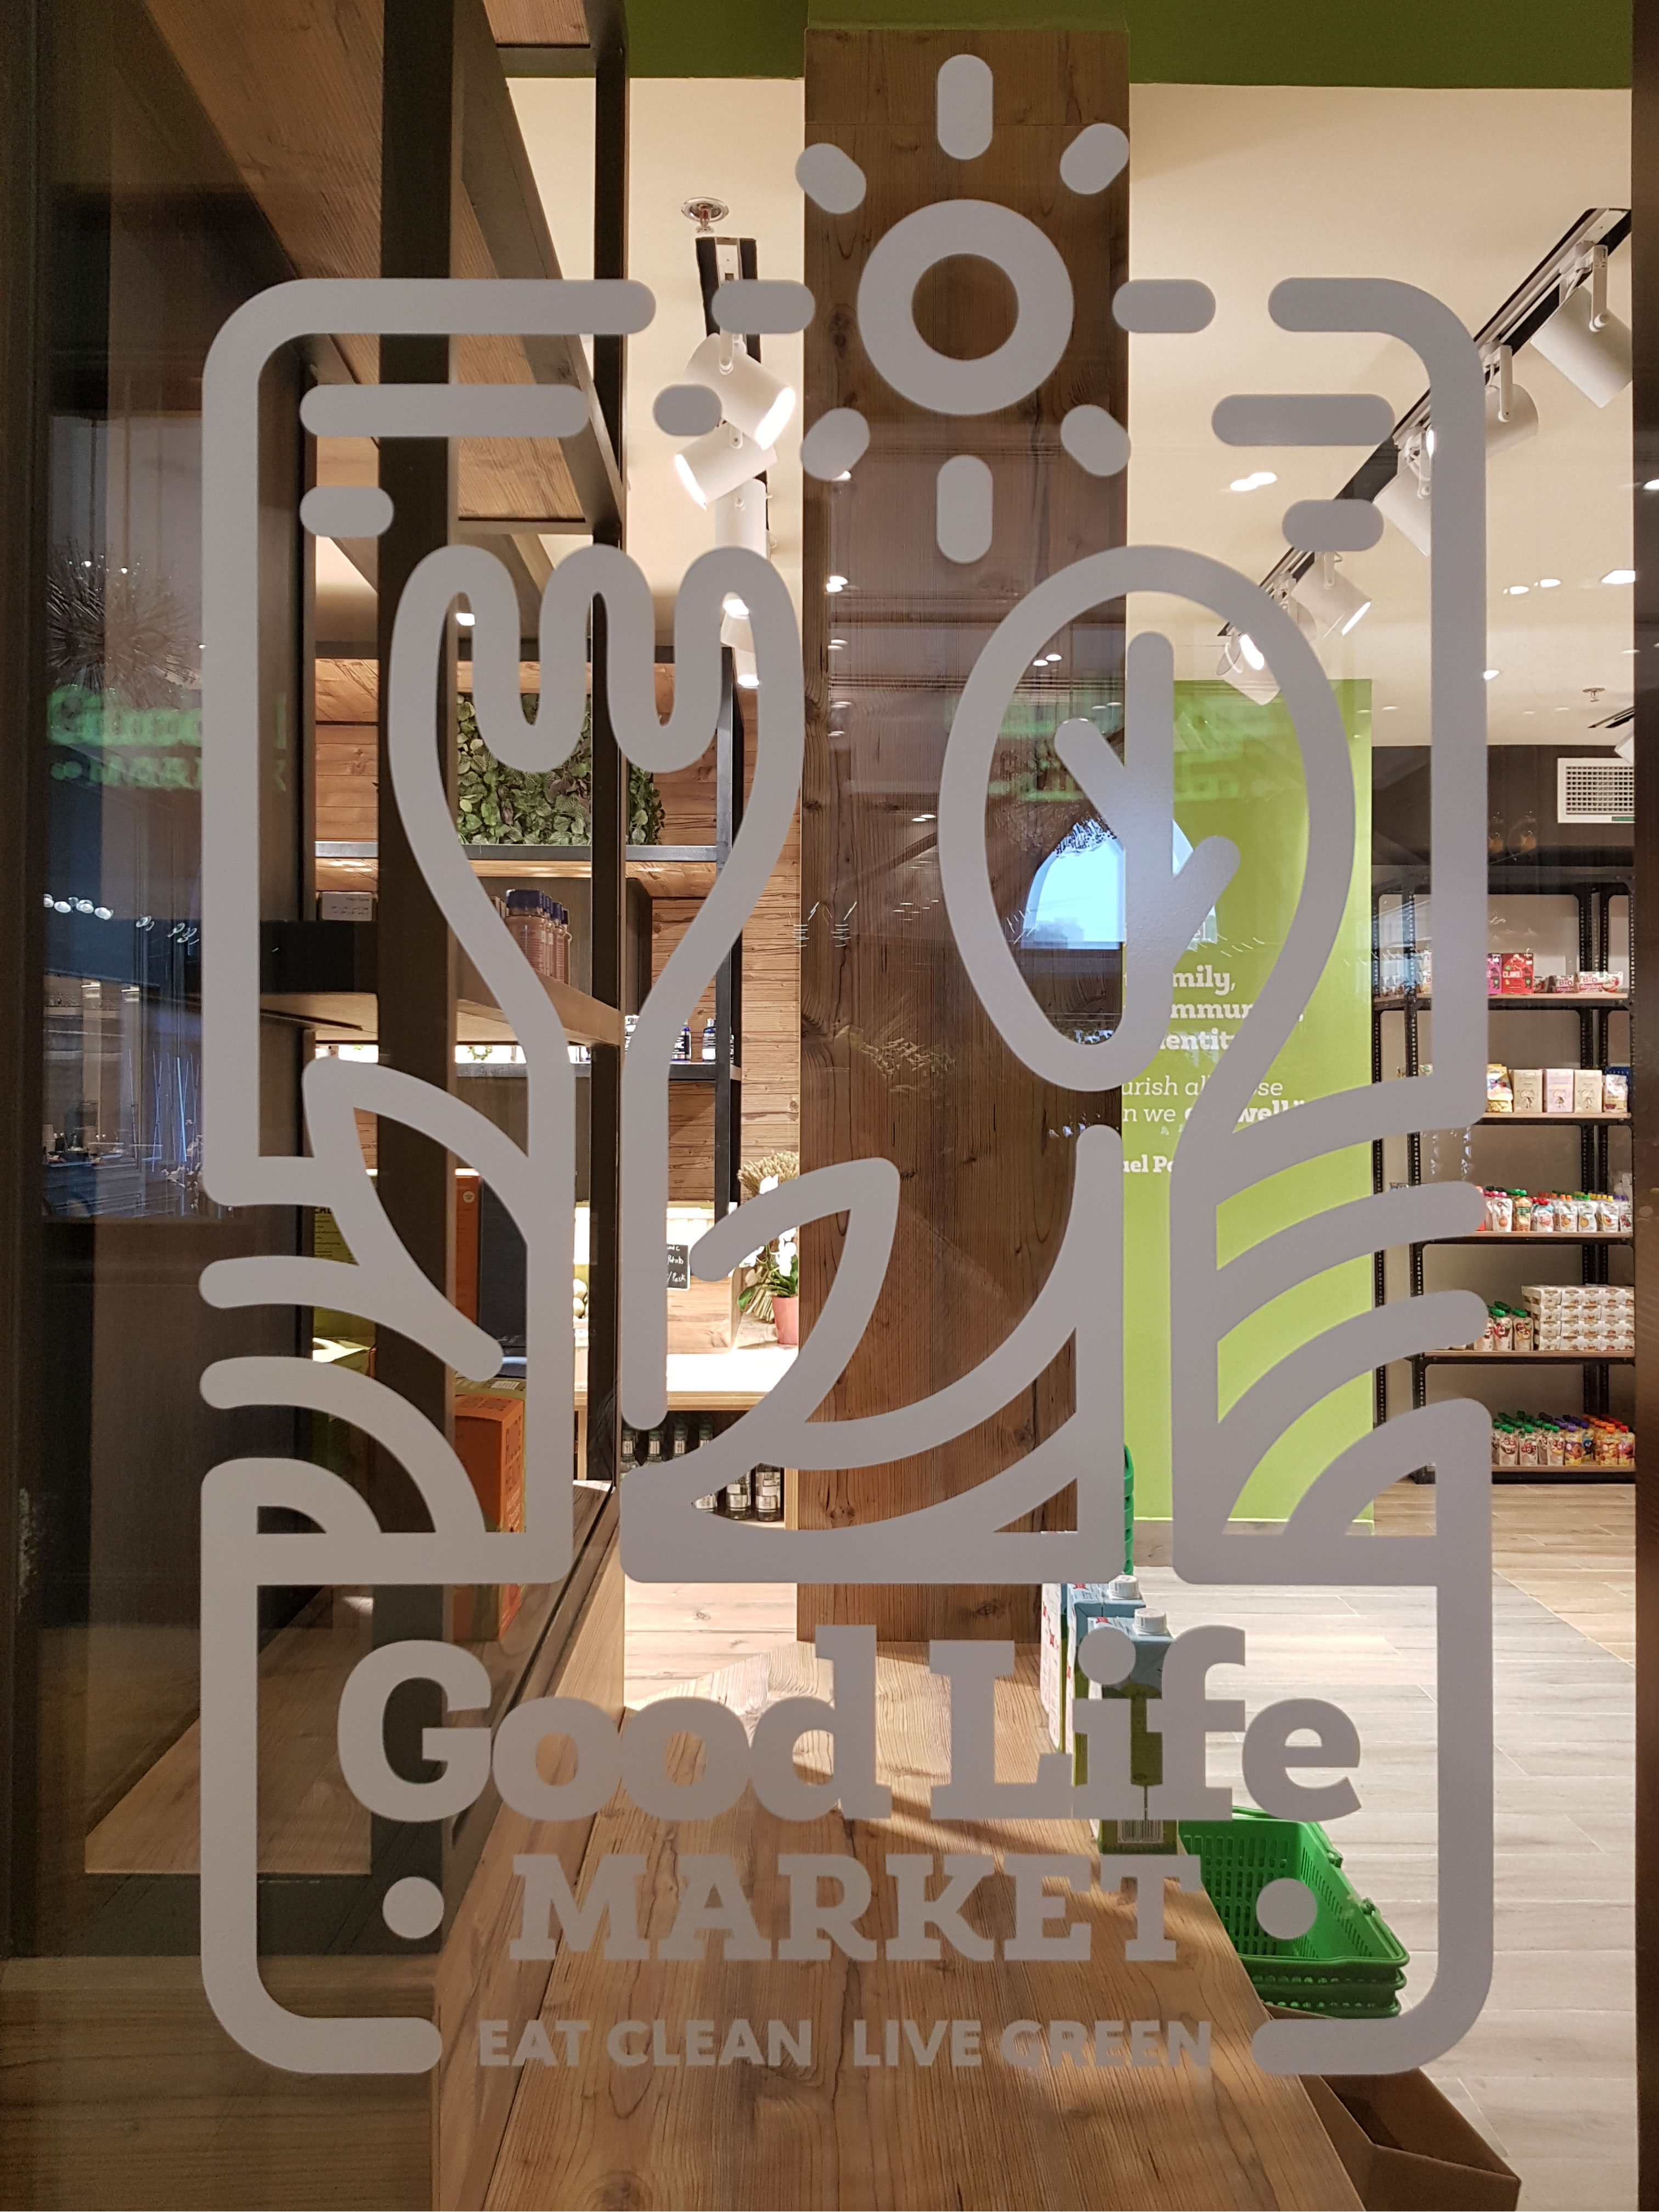 Good Life Market Qatar S First And Only Health Food Store